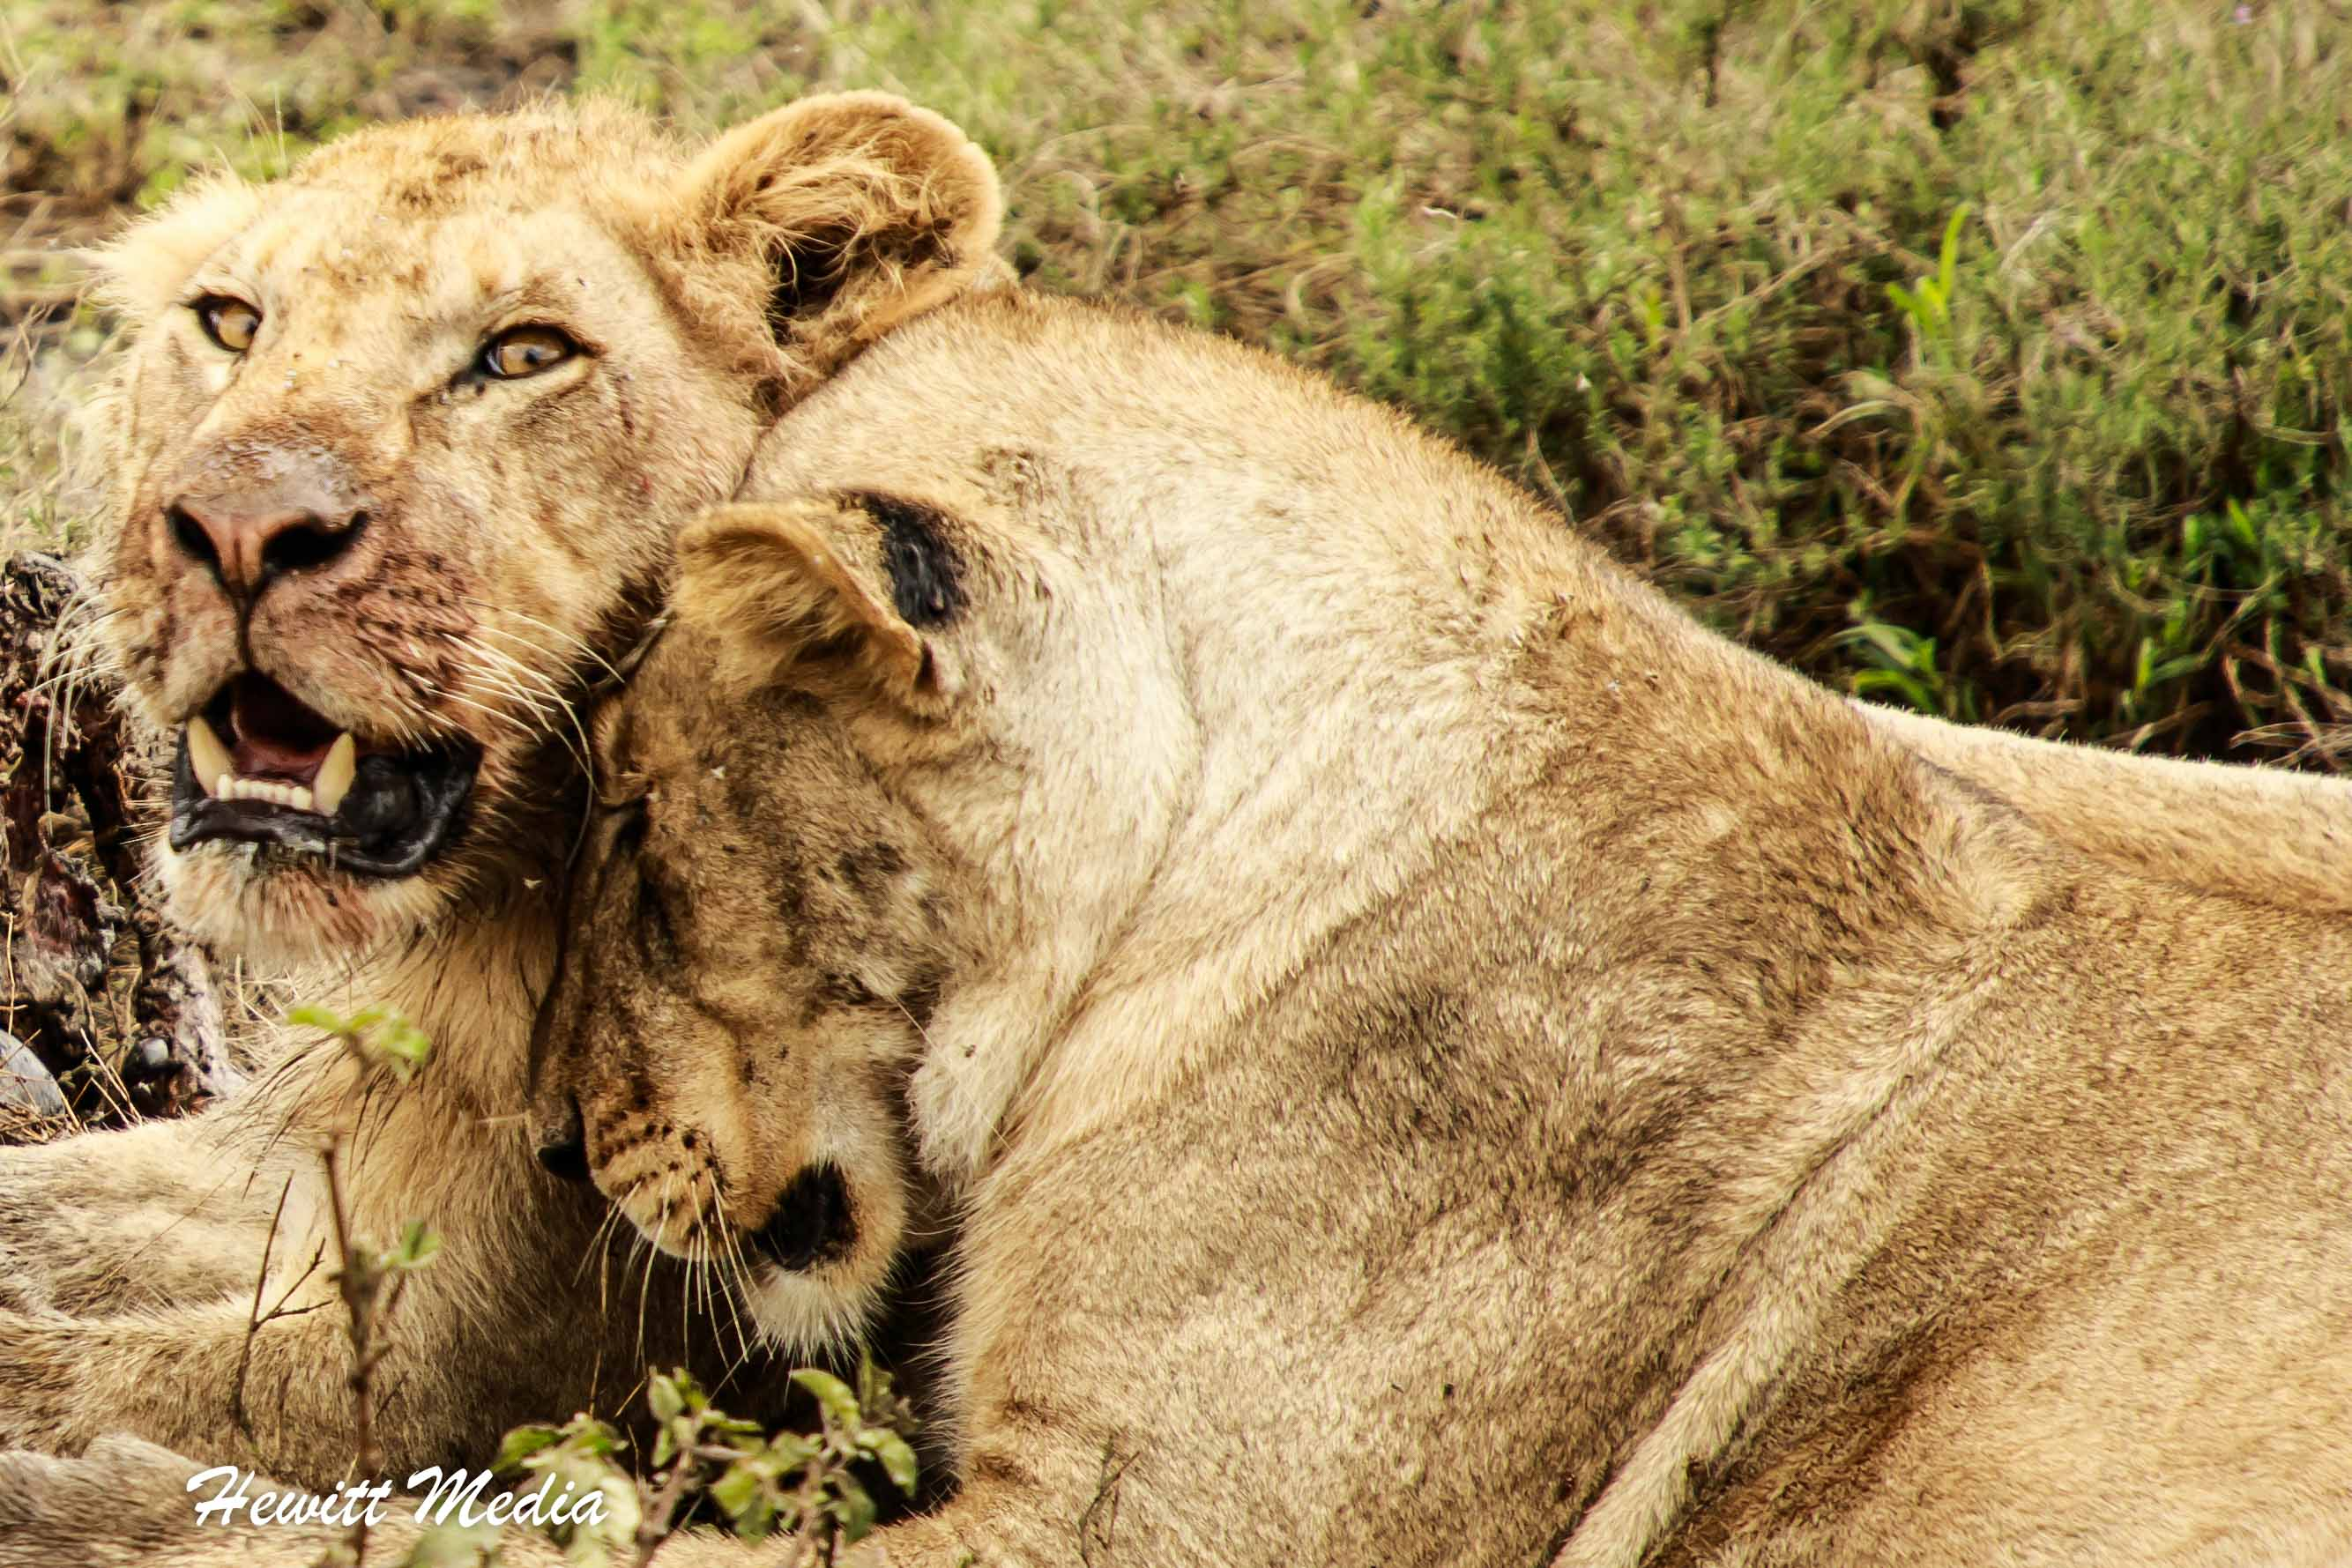 Two lions bonding in the Serengeti National Park